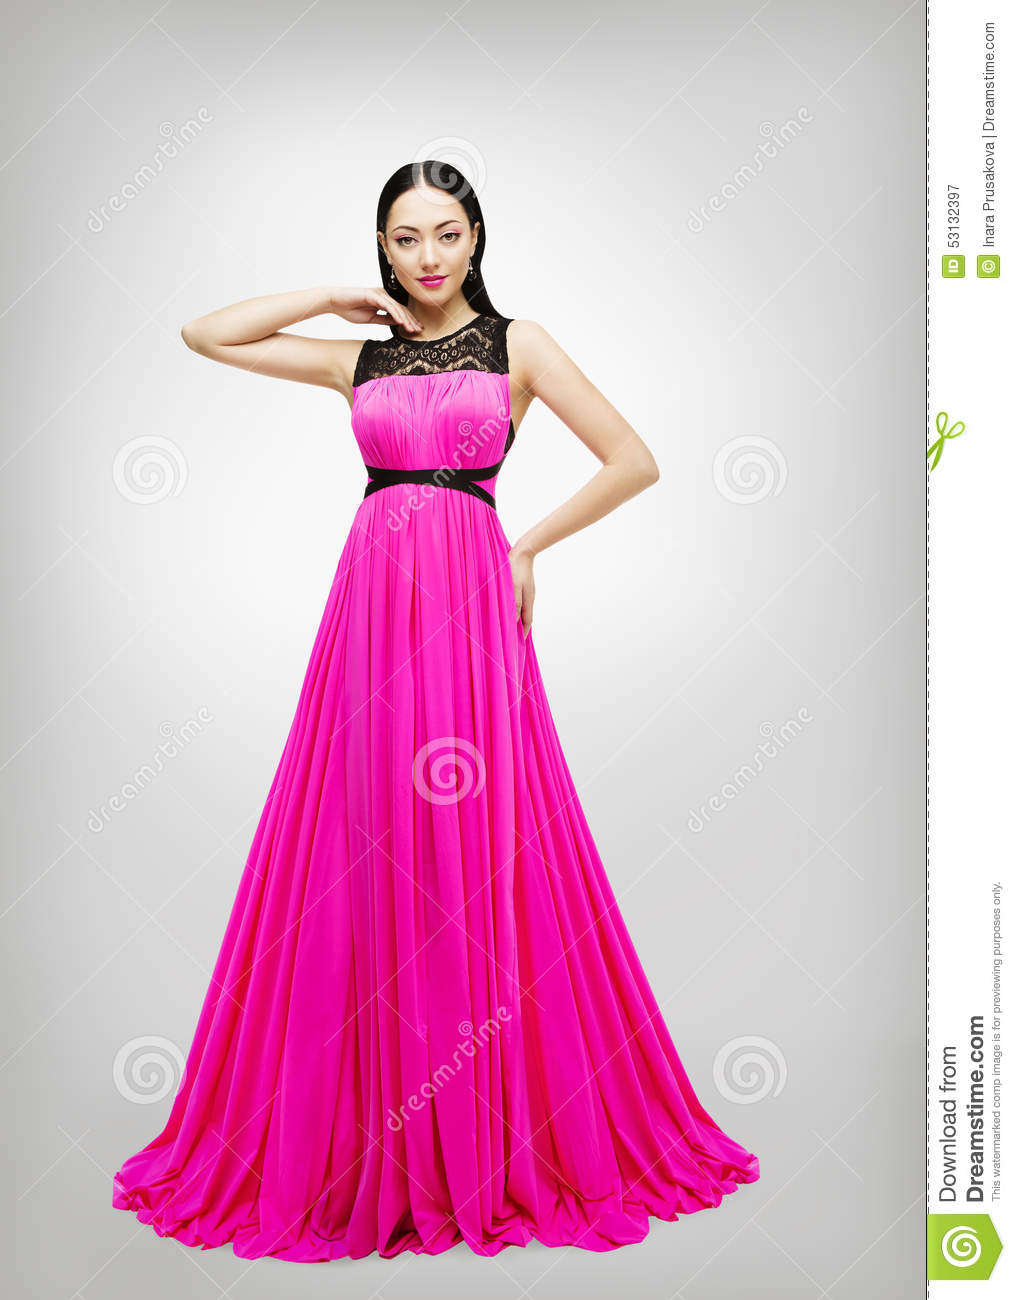 Long Dress Young Woman Fashion Model Pink Gown High Waist Stock Photo Image 53132397